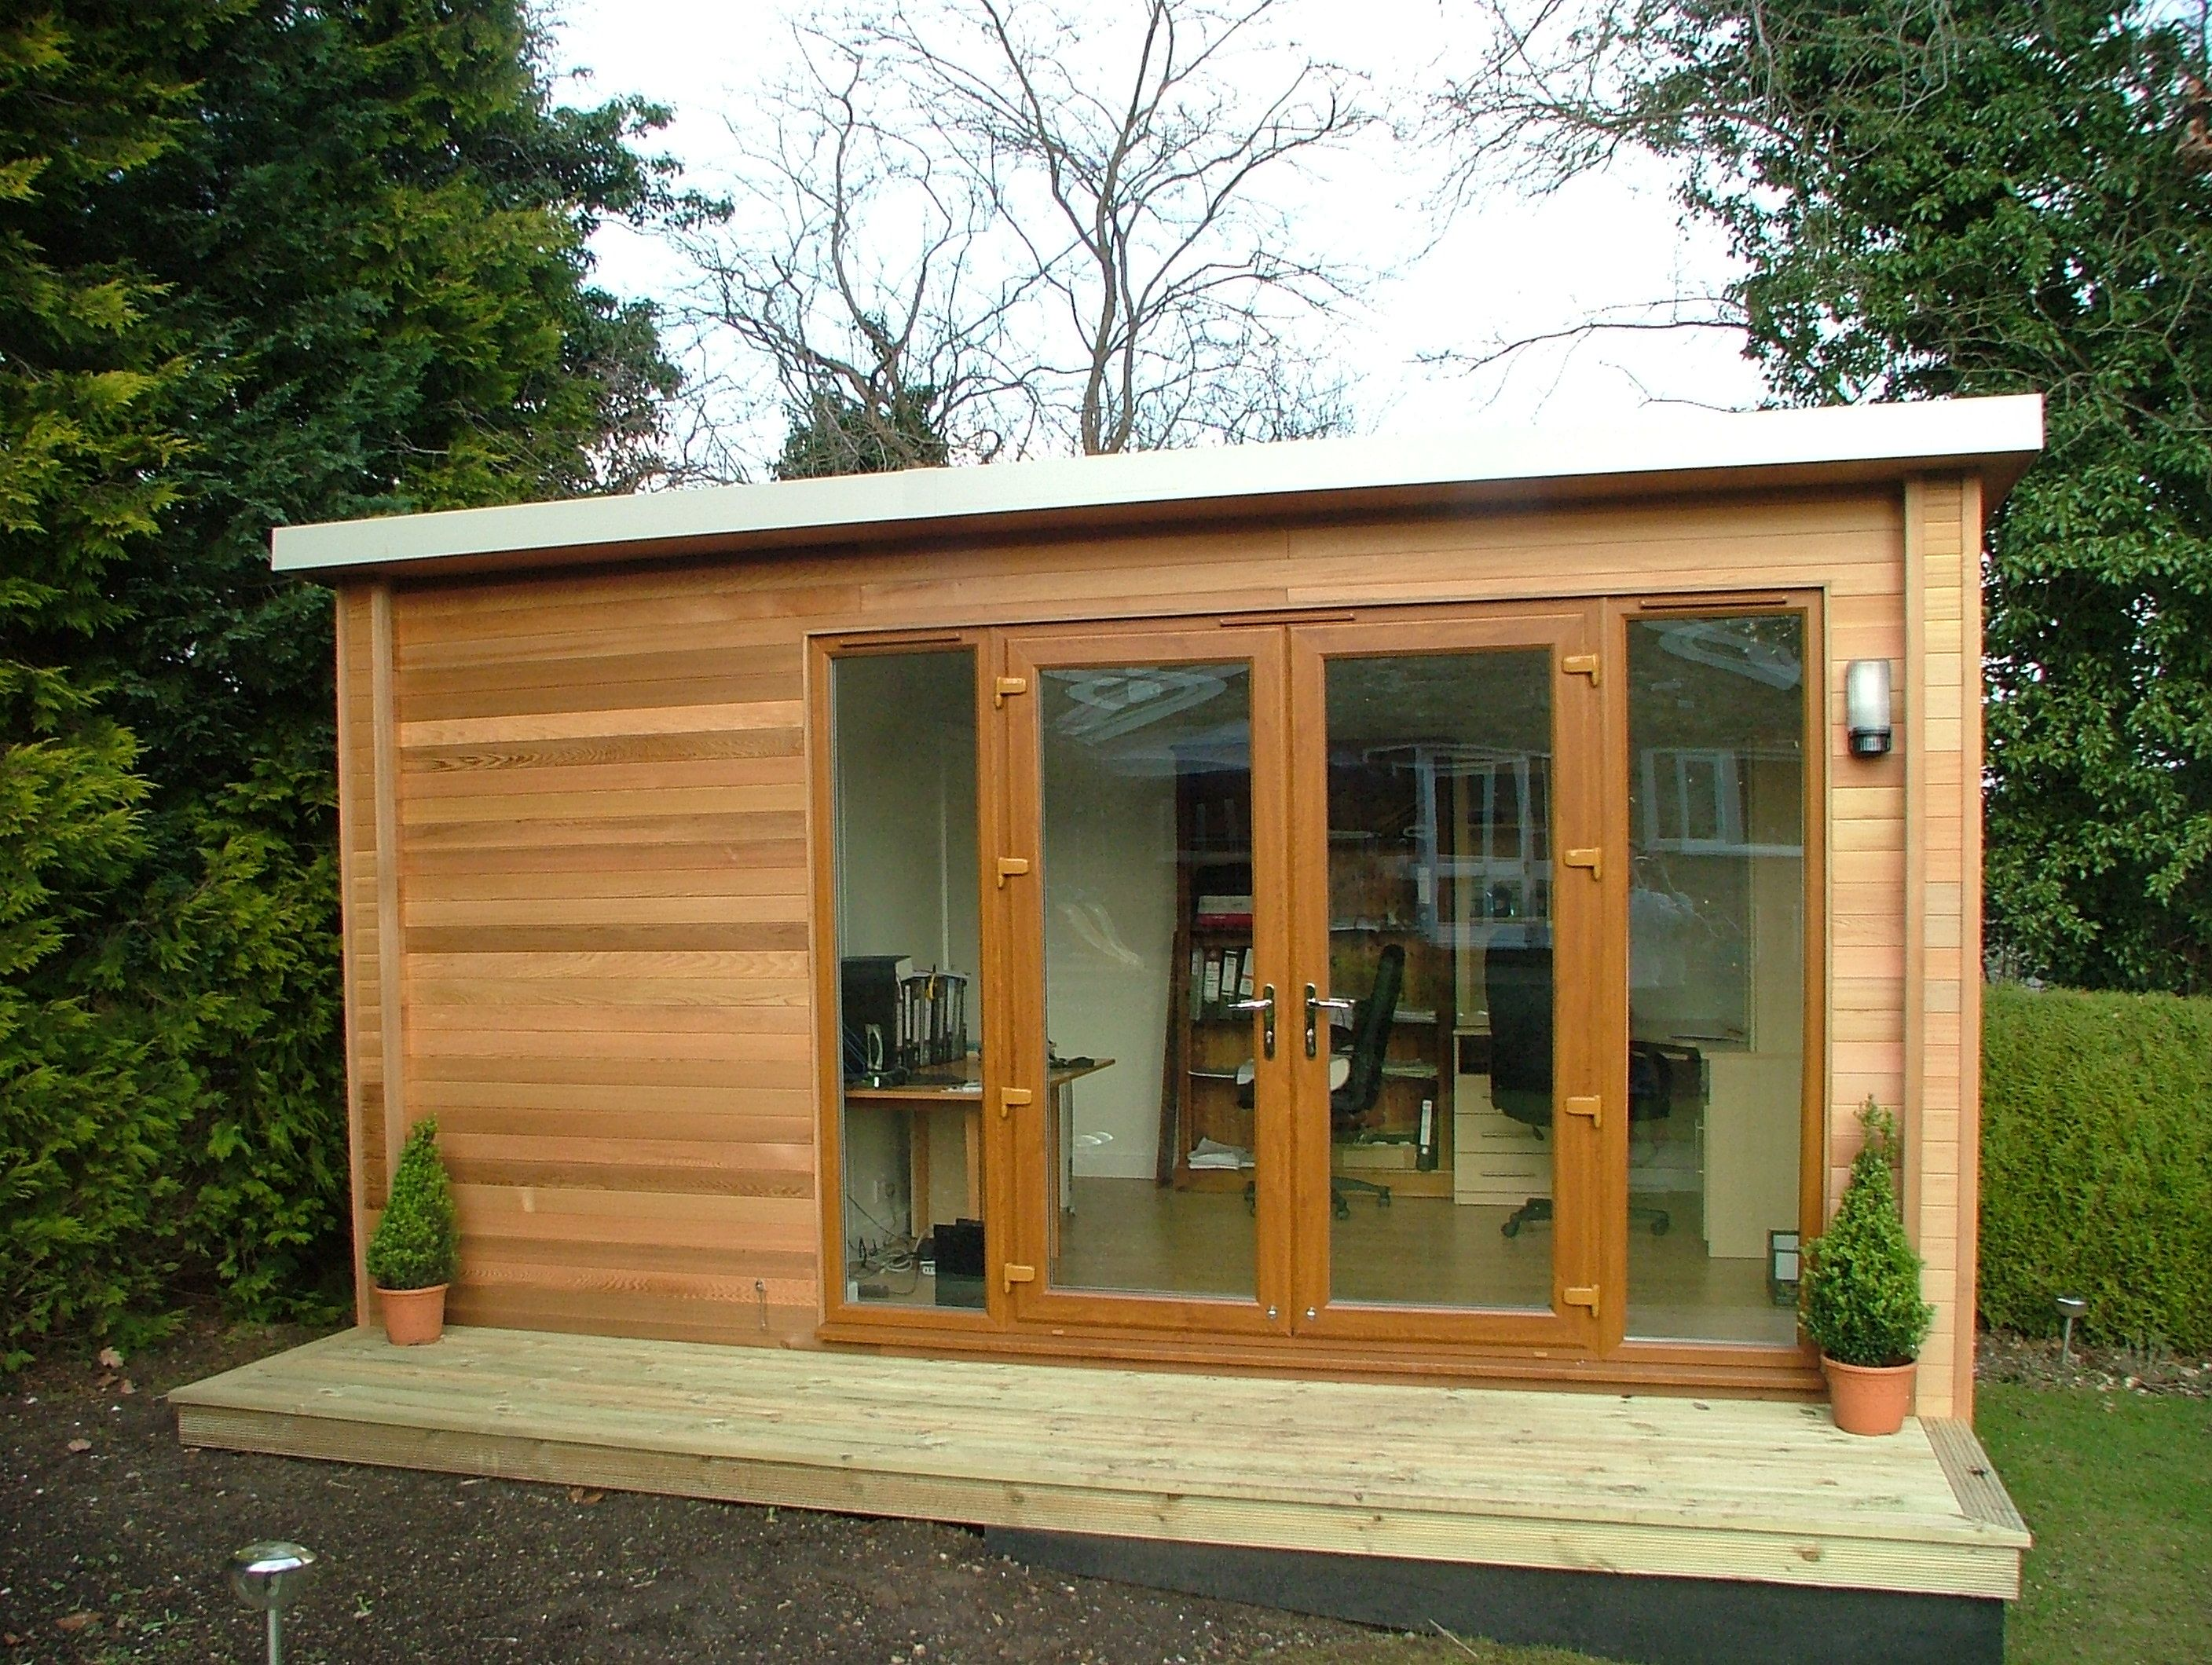 Home Garden Office With A Flat Roof And Upvc French Doors